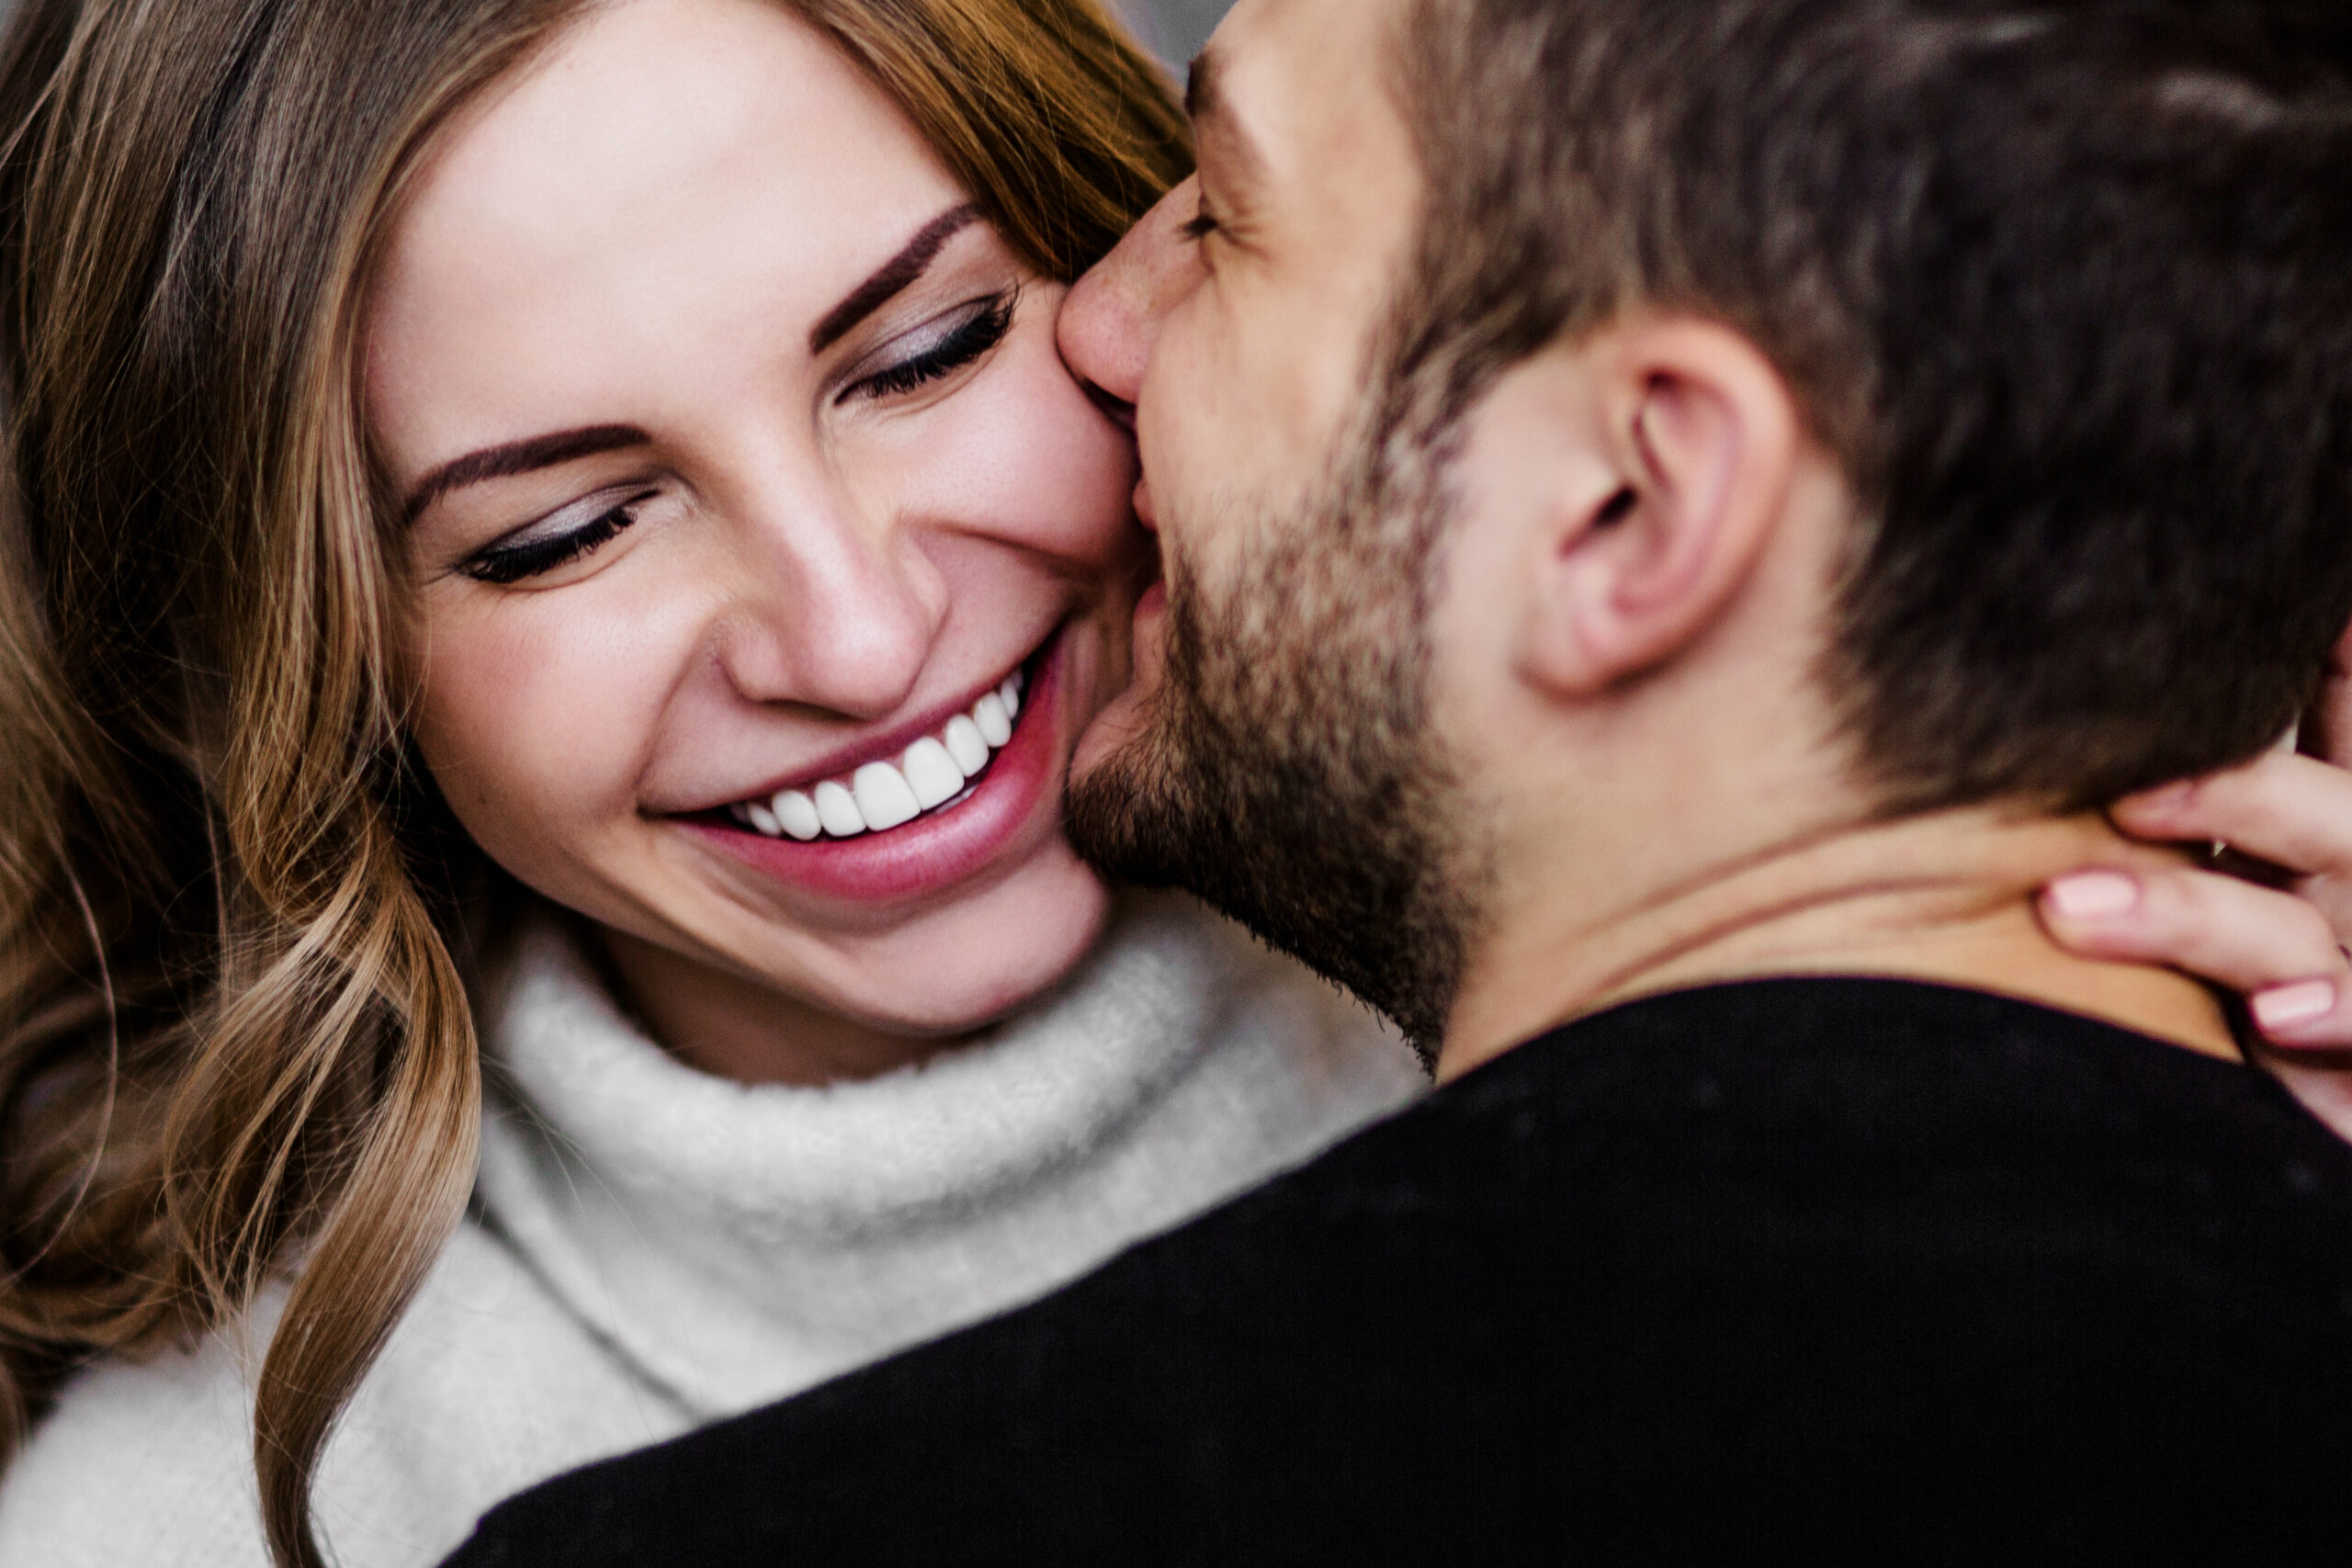 Man and woman smiling and kissing.